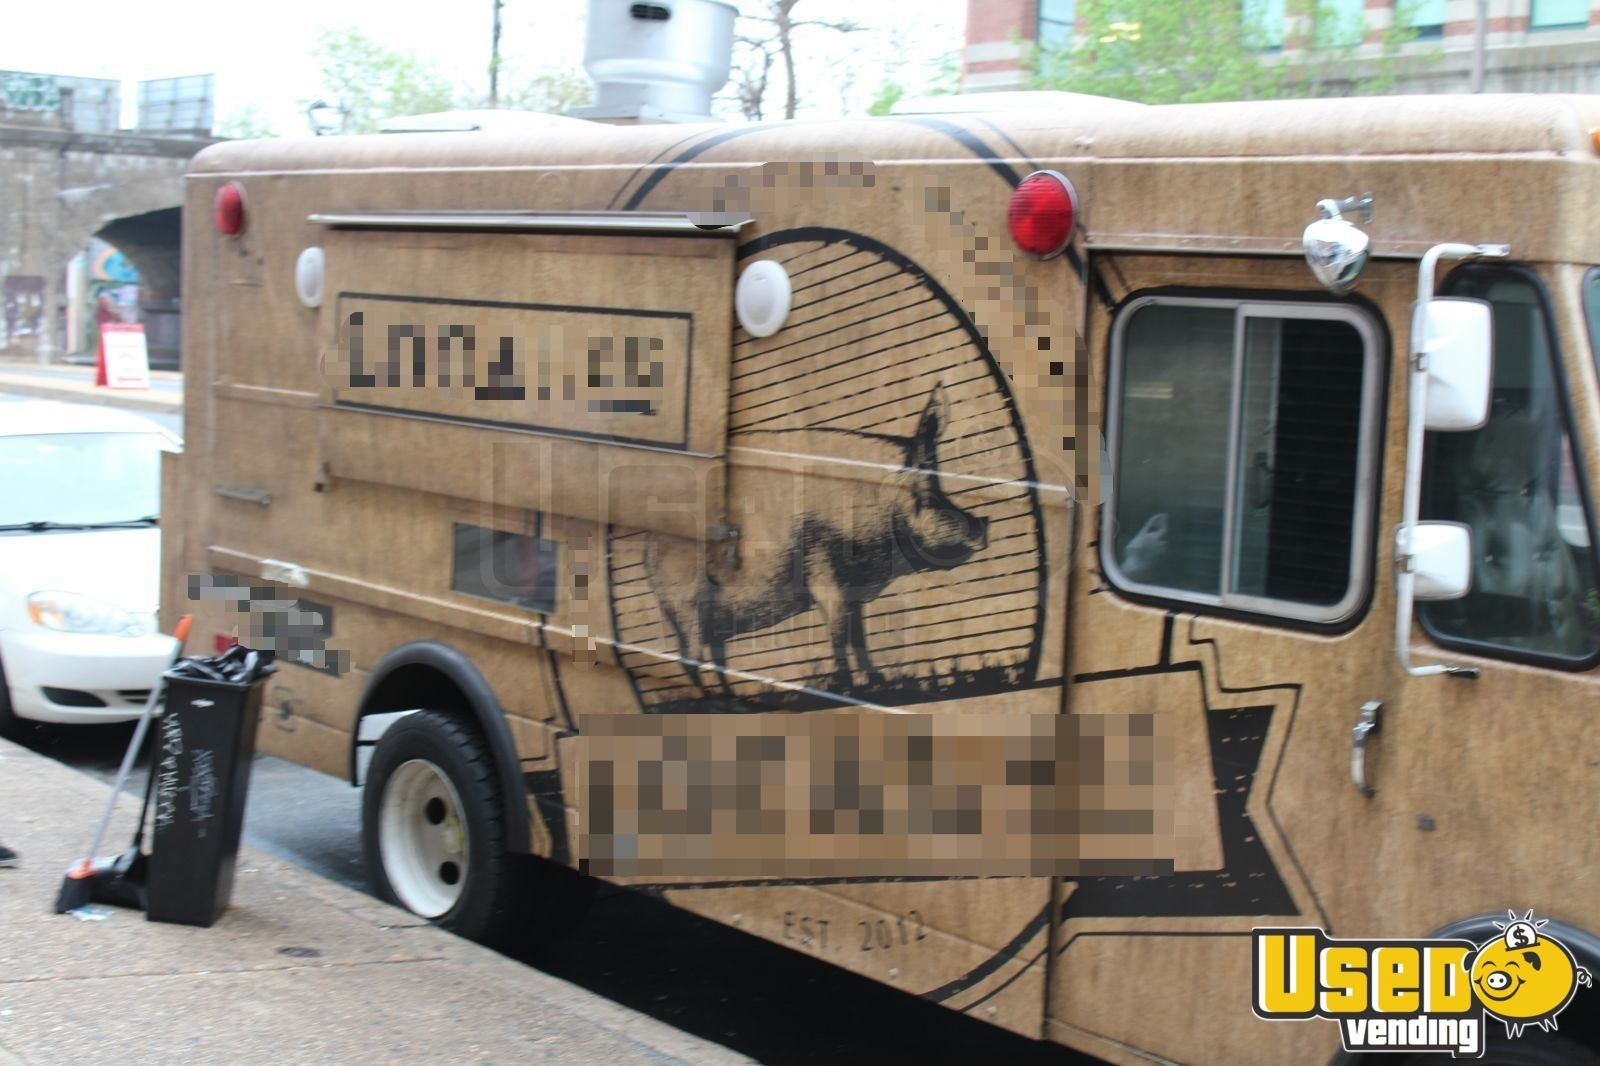 Chevrolet P30 Step Van Kitchen Food Truck With Commercial Grade Equipment For Sale In Pennsylvania Chevy Trucks Accessories Chevy Trucks Chevy Diesel Trucks